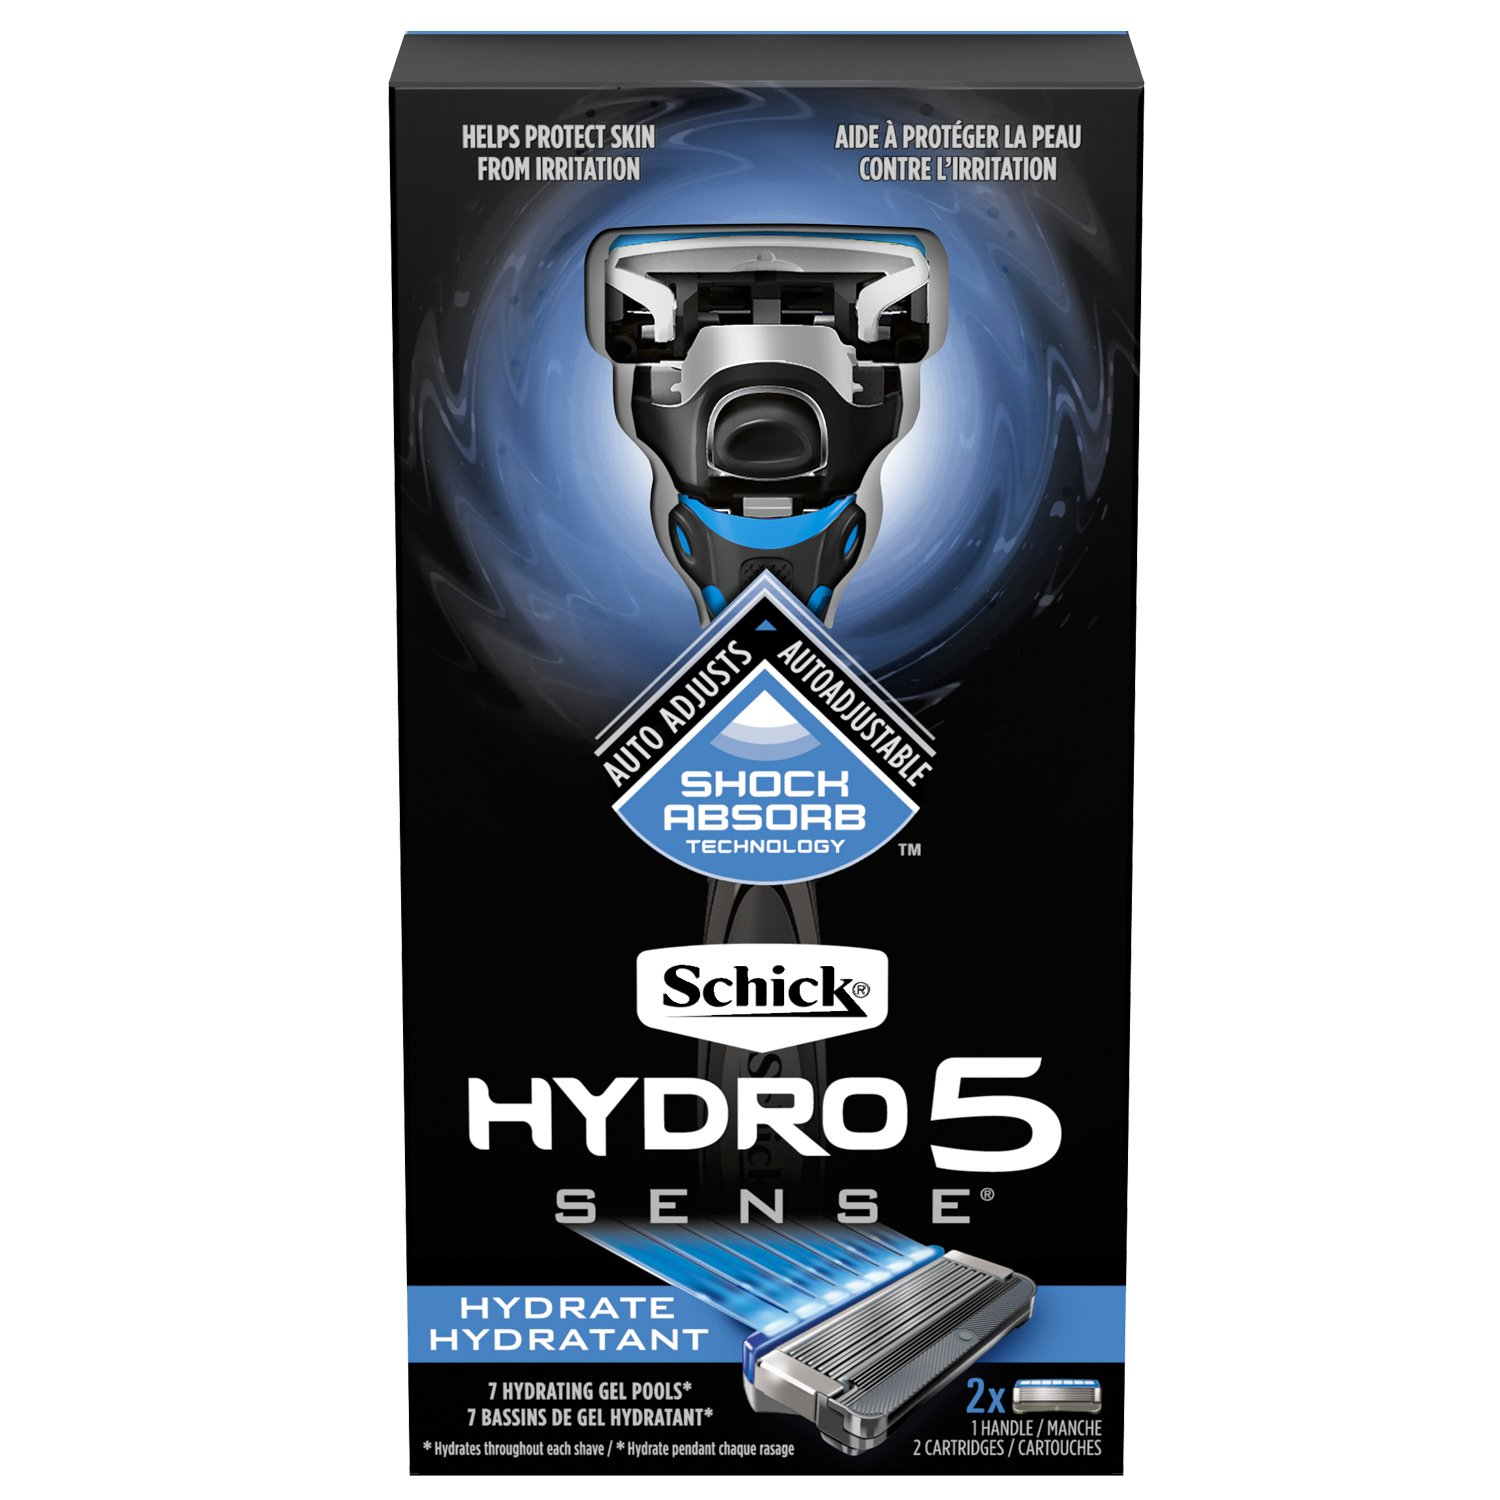 Shaving razor for men Schick Hydro 5: reviews 31